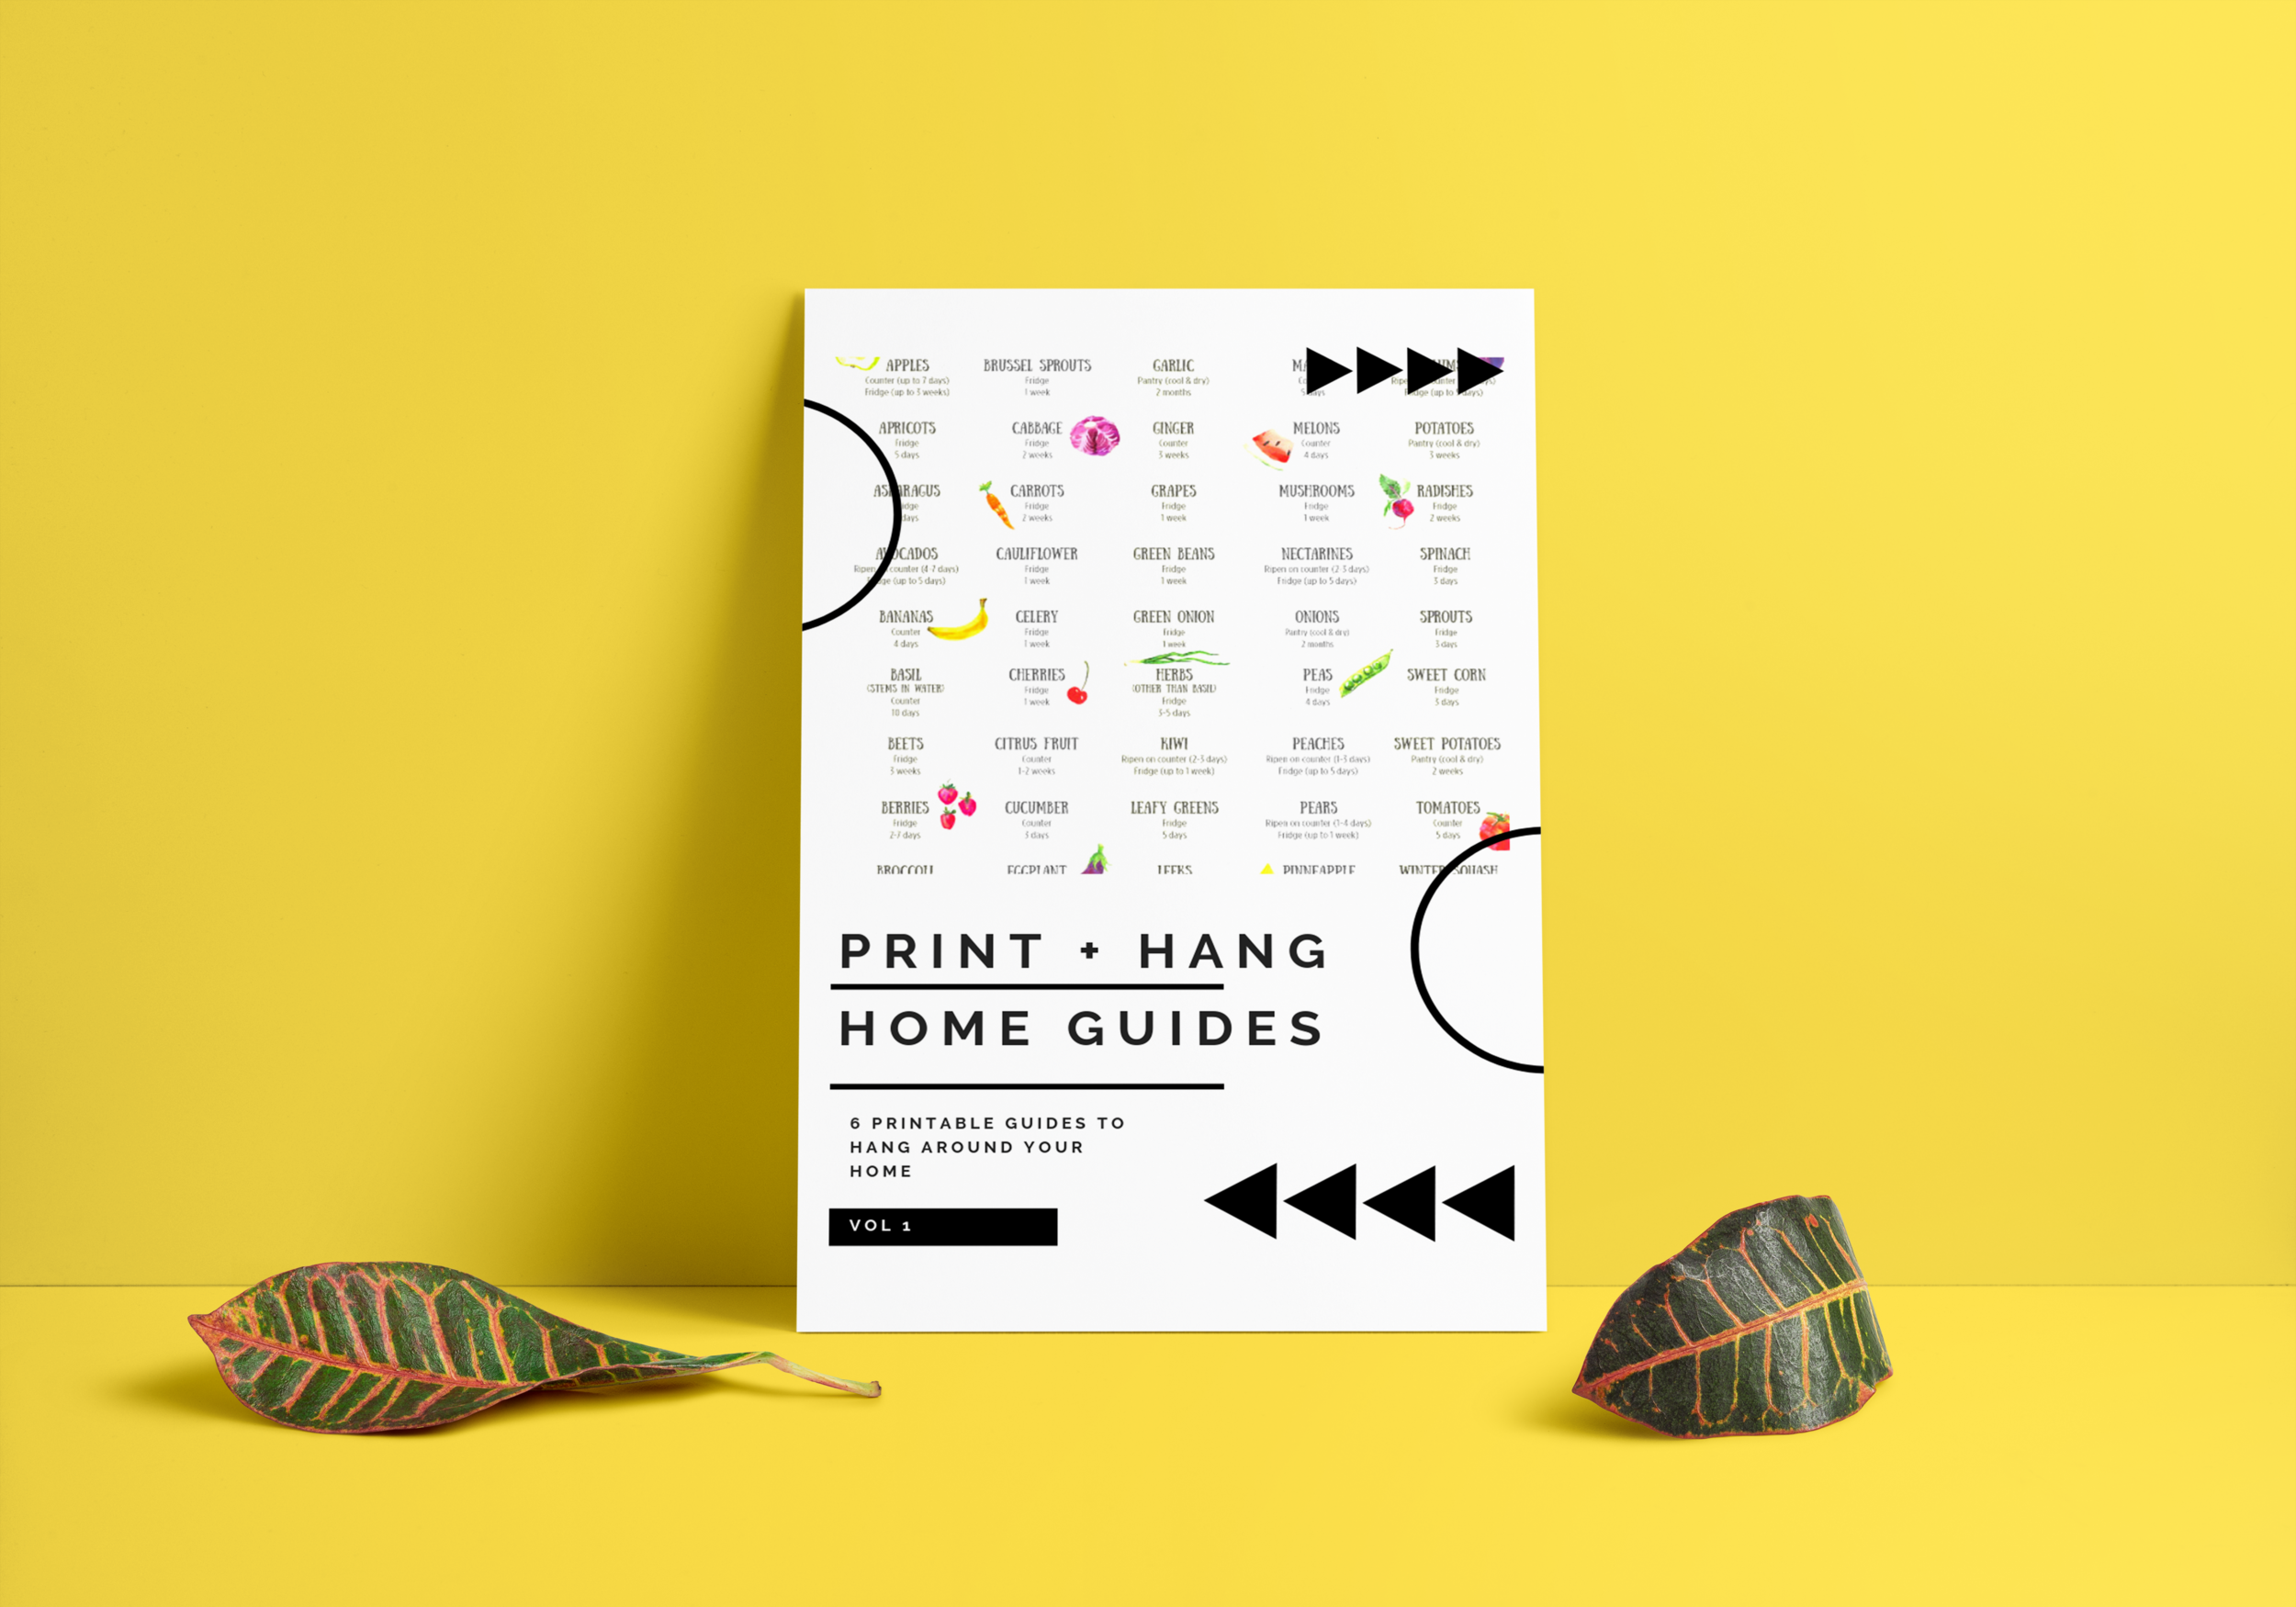 photo about Printable Guides titled PRINT + Hold Residence Textbooks creativholistic